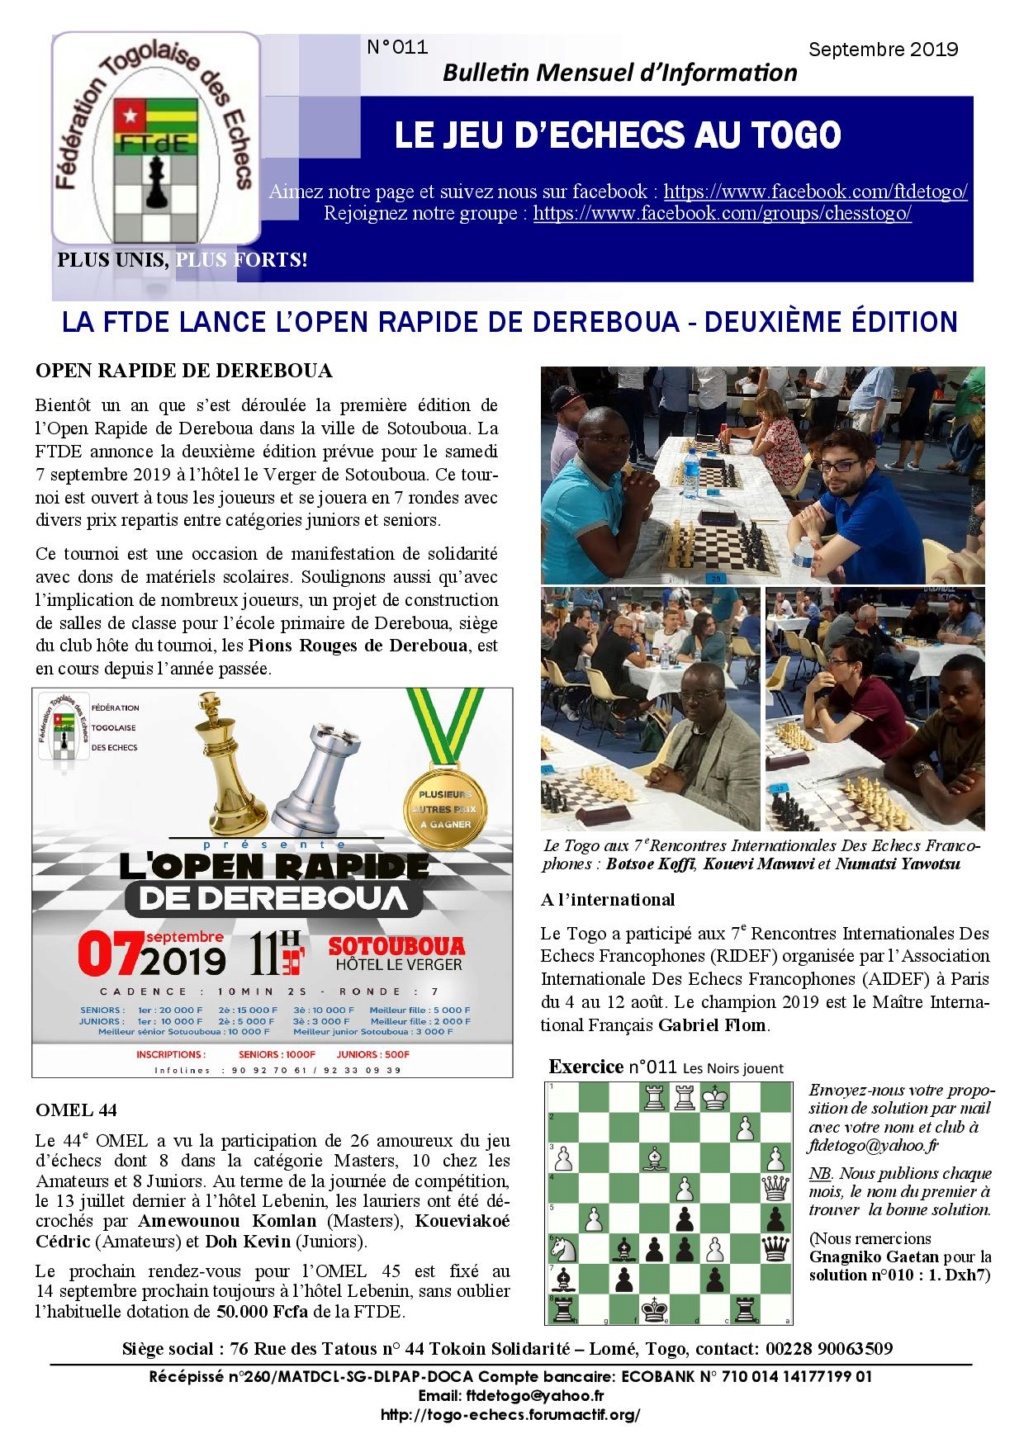 Le Bulletin Mensuel d'Information n° 011 sept 2019 Bmi_ft19